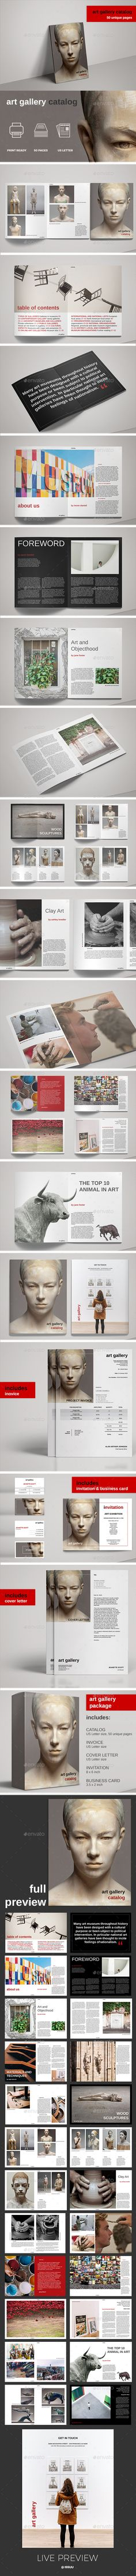 Art Gallery Exhibition Catalog — InDesign INDD #artist #minimal • Available here → https://graphicriver.net/item/art-gallery-exhibition-catalog/17647412?ref=pxcr